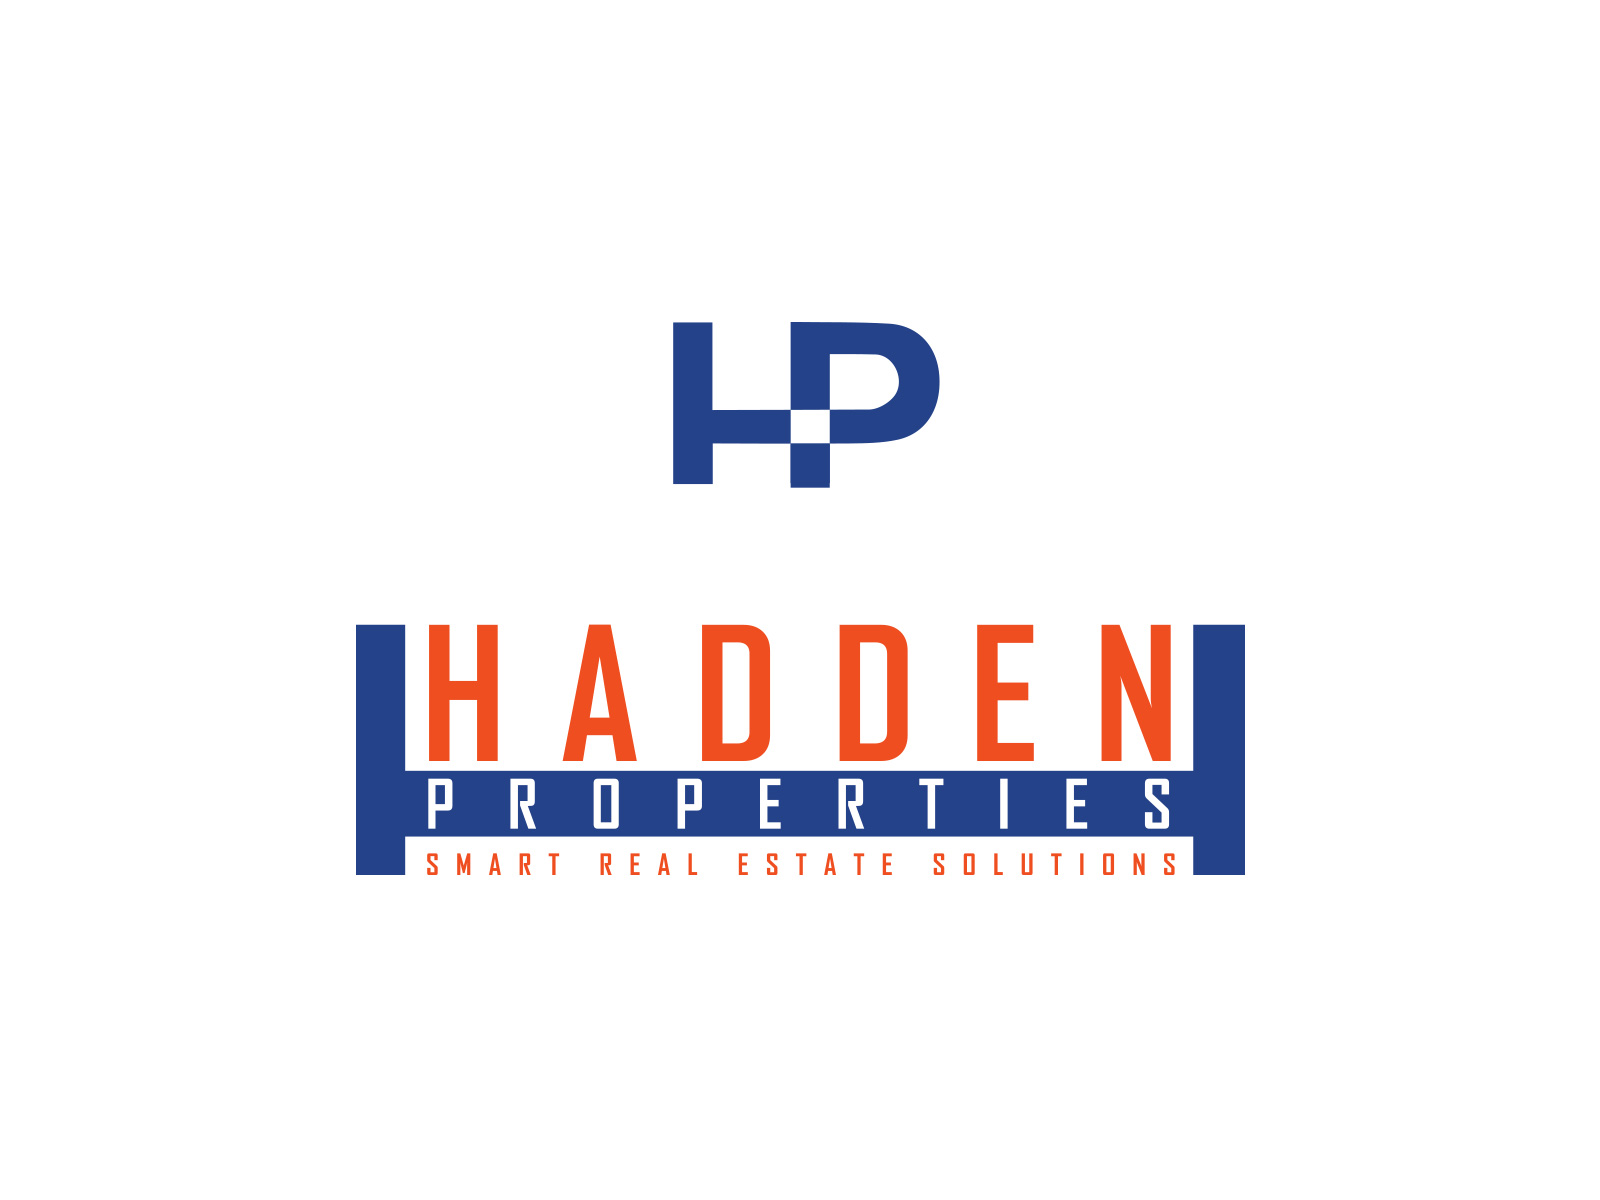 Logo Design by olii - Entry No. 178 in the Logo Design Contest Artistic Logo Design for Hadden Properties.